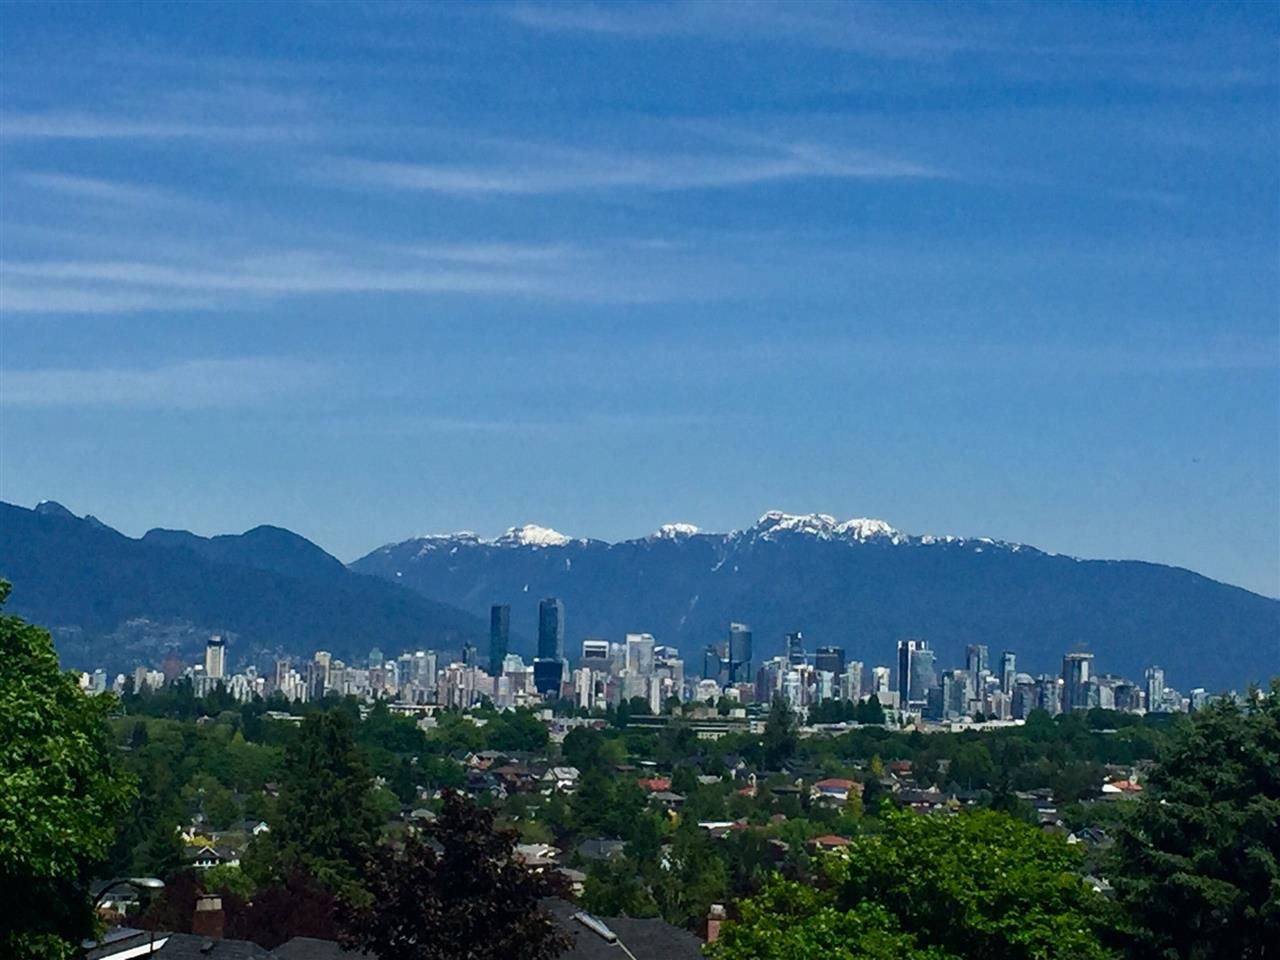 """Main Photo: 3038 W KING EDWARD Avenue in Vancouver: MacKenzie Heights House for sale in """"Mackenzie Hts"""" (Vancouver West)  : MLS®# R2170394"""